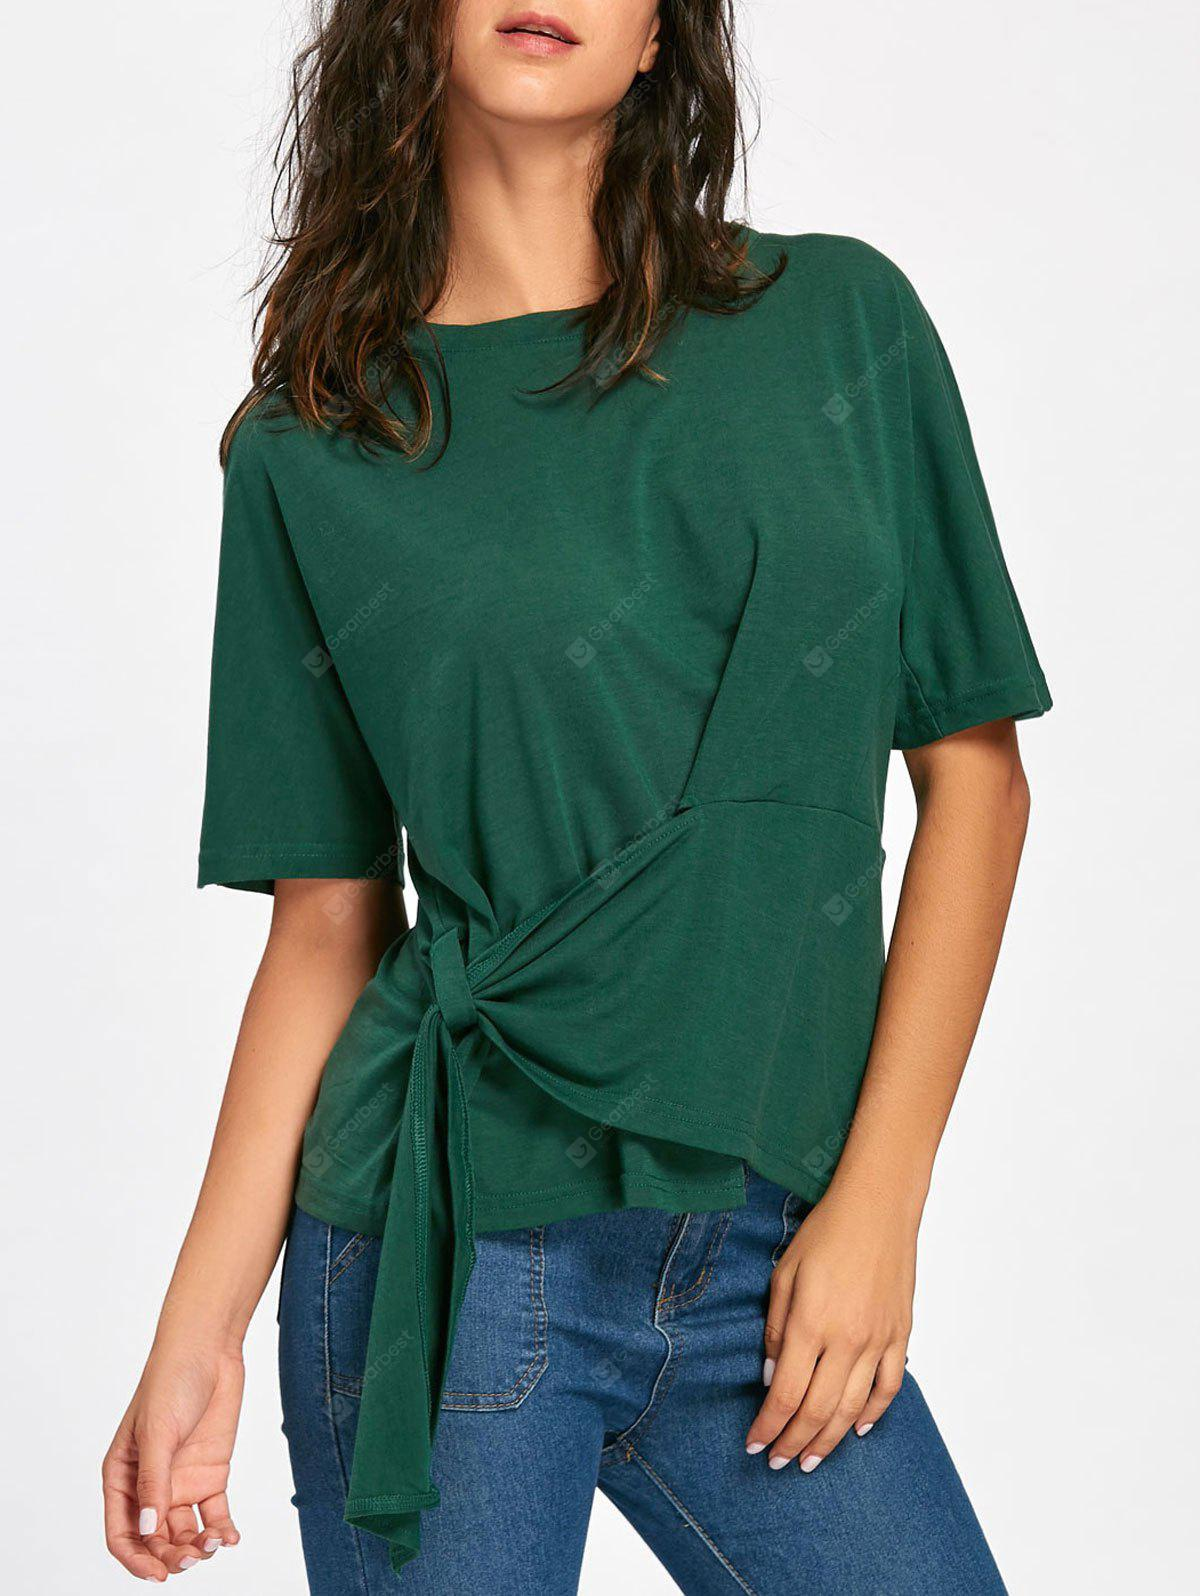 Batwing Sleeve Asymmetrical Front Tie T-shirt